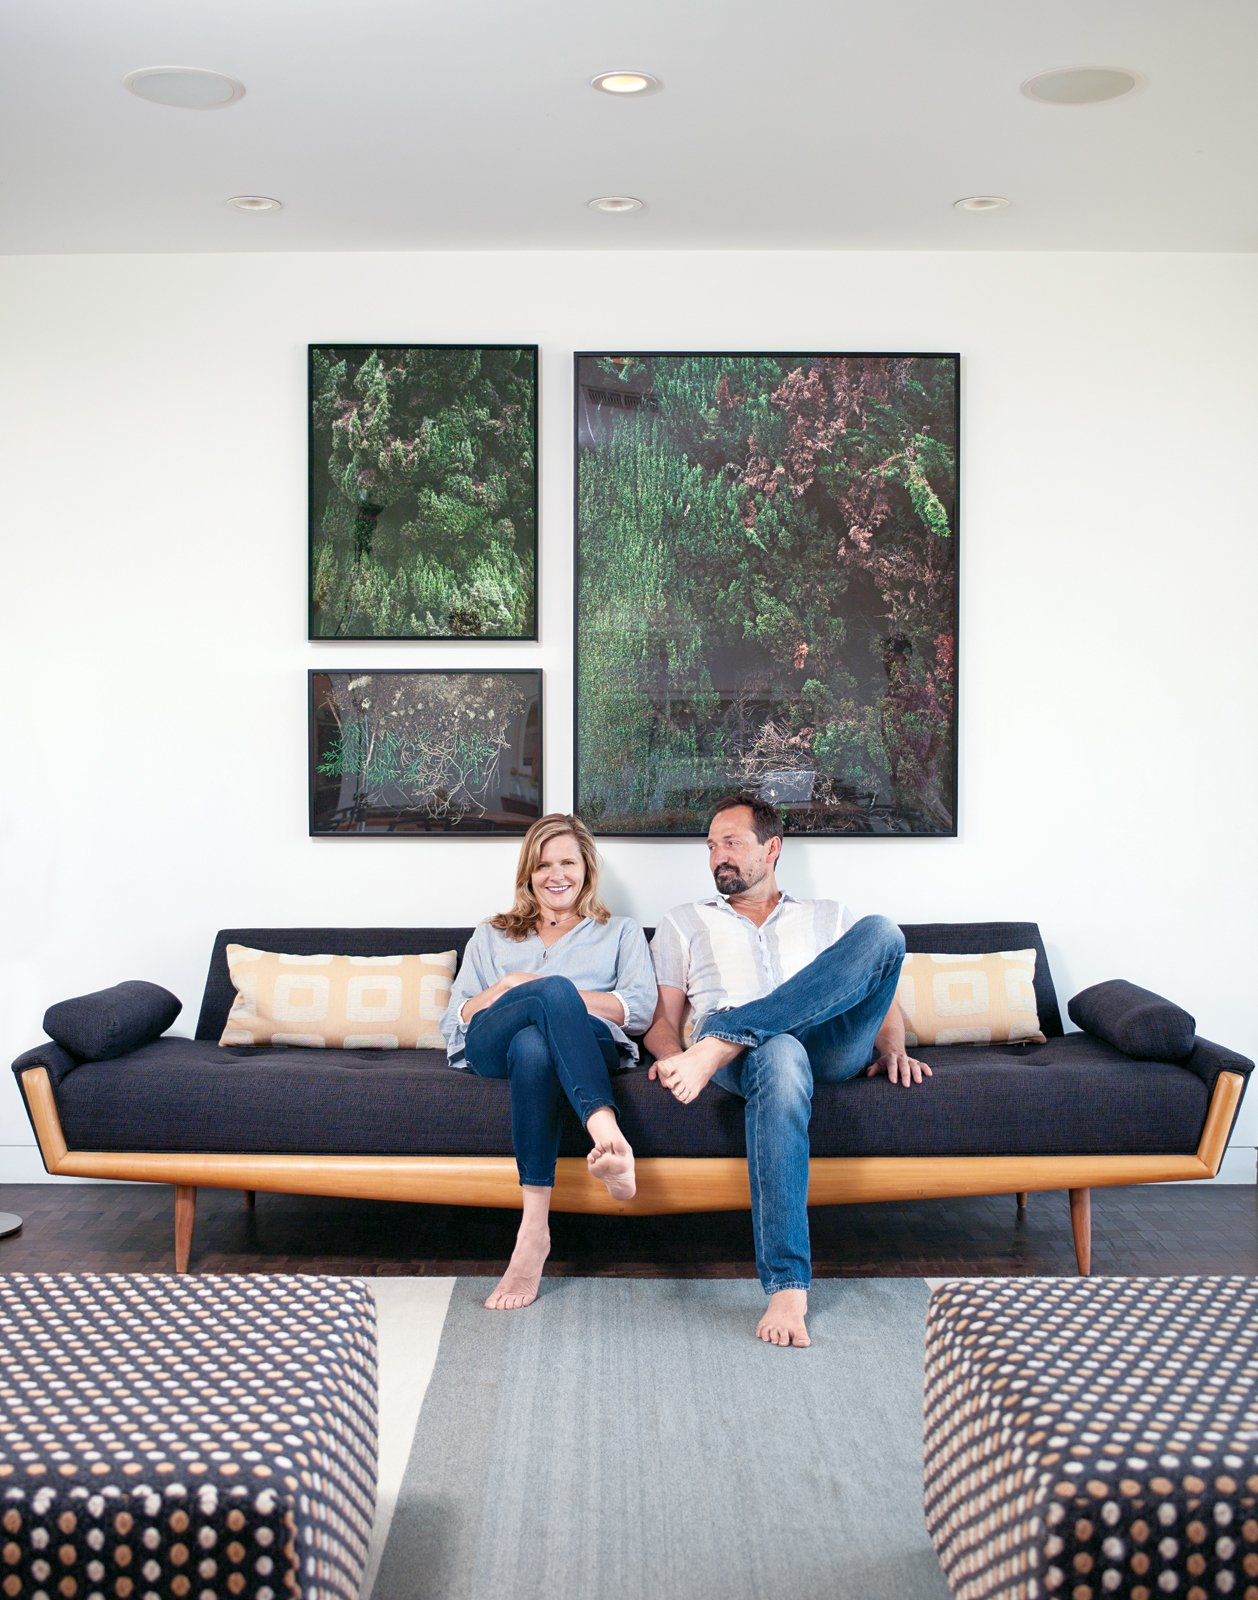 Gabbert and Avery relax on a vintage sofa in their living room beneath large-format photos of juniper bushes by Maegan Hill-Carroll. L-Shaped Indoor-Outdoor LA Home - Photo 1 of 21